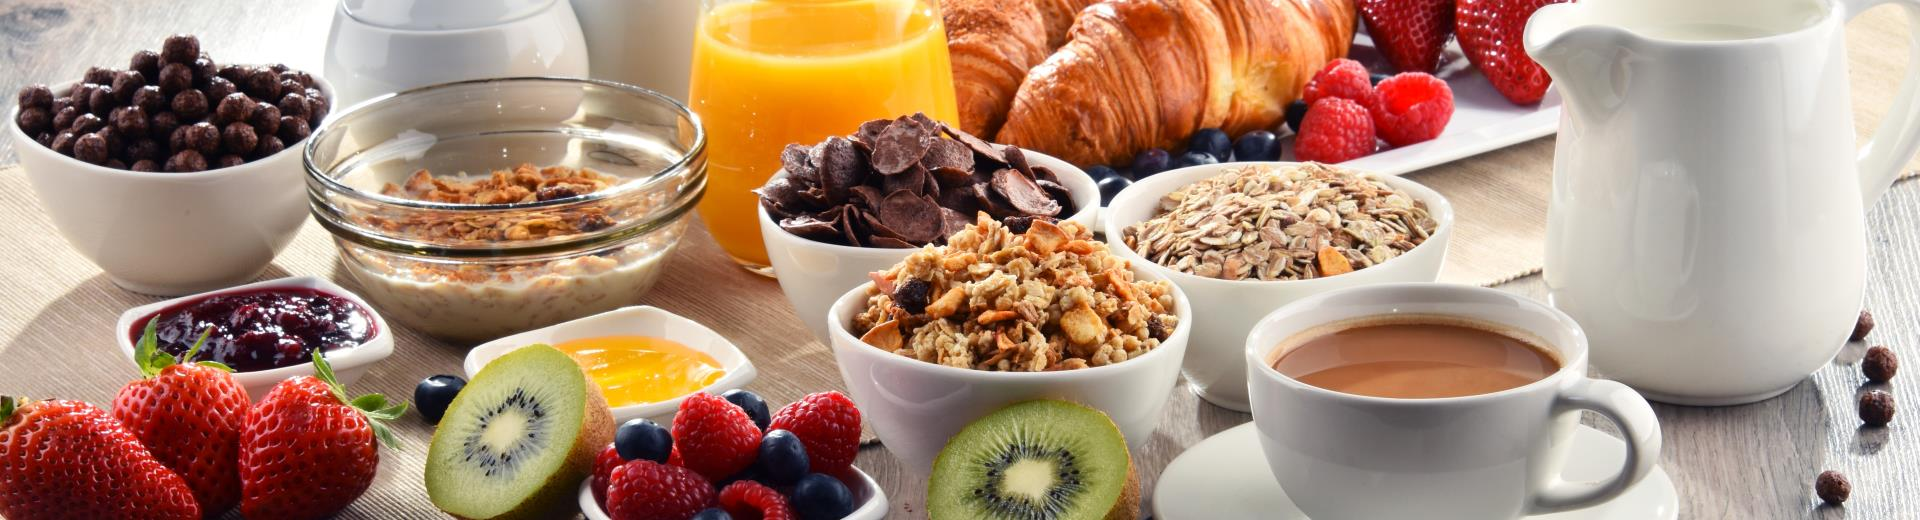 Per i soci Best Western Rewards® Gold, Platinum, Diamond e Diamond Select la colazione è gratis!